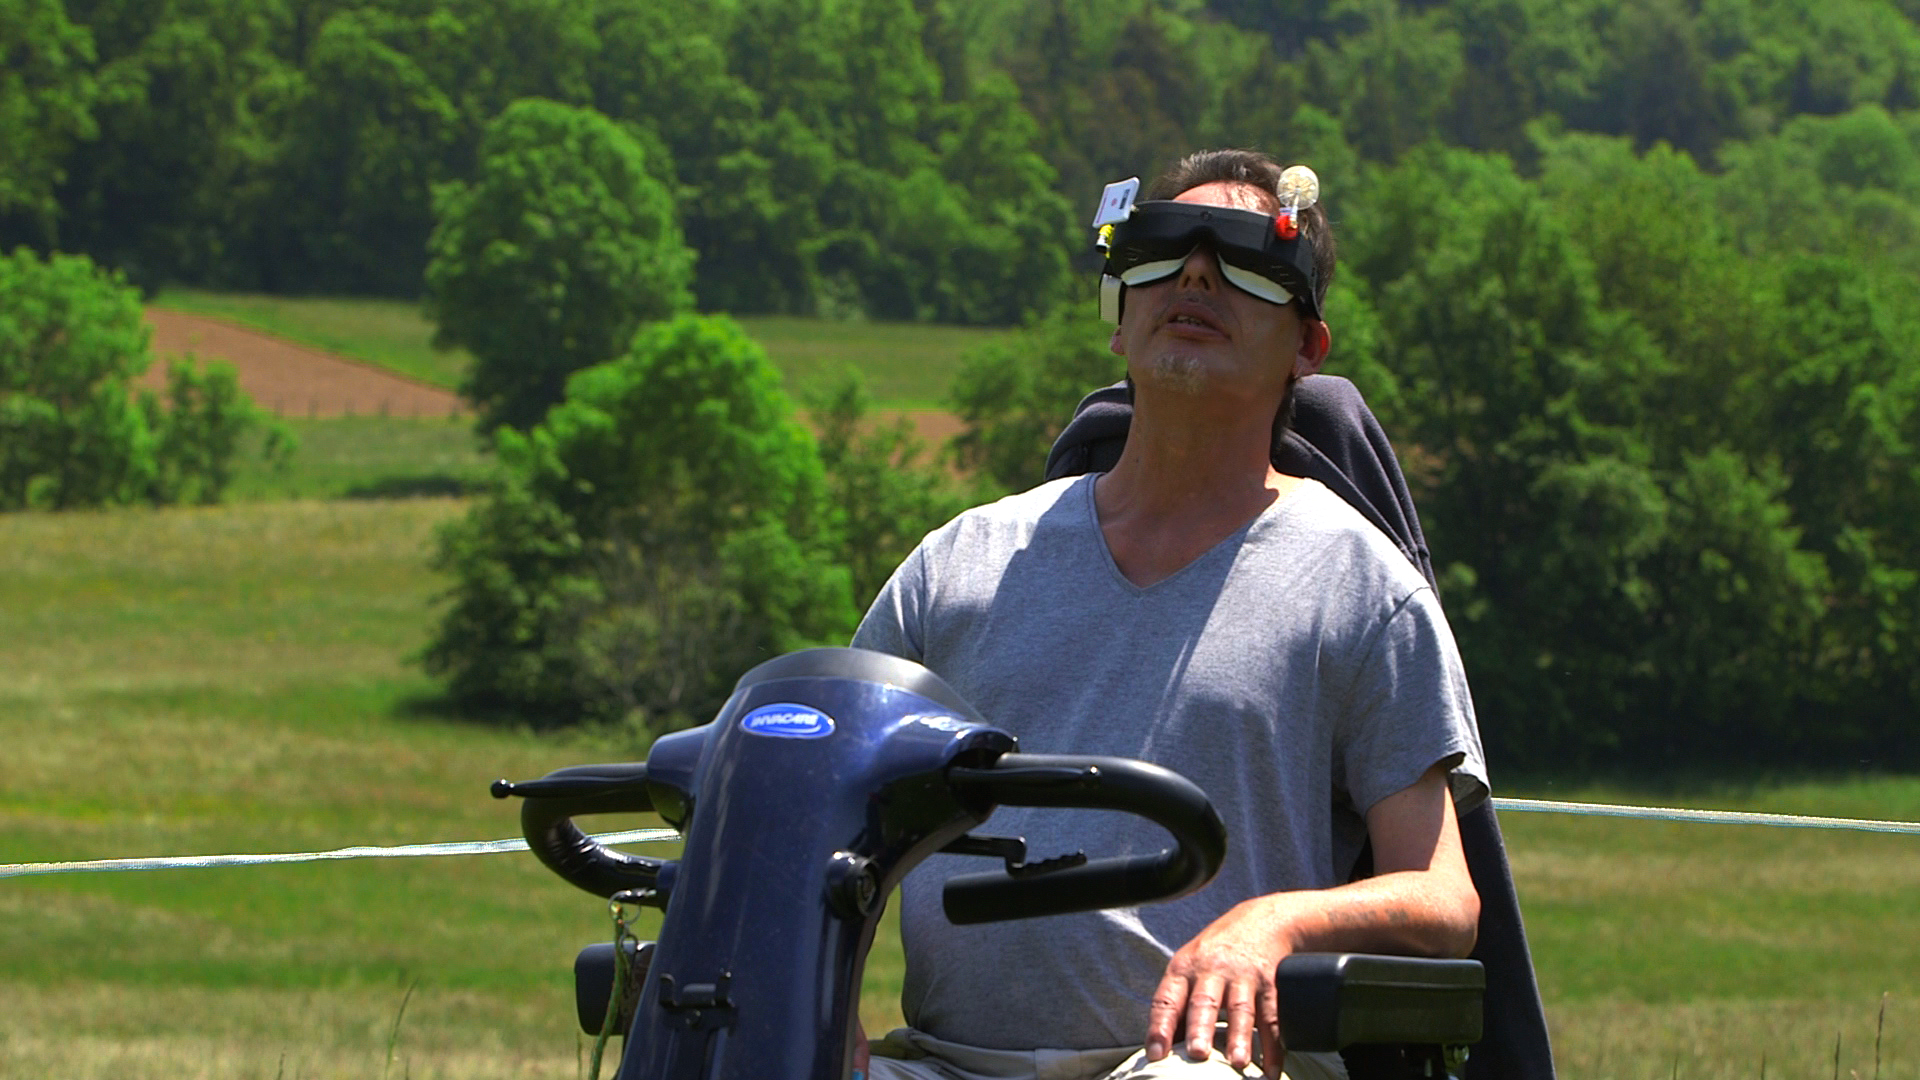 HandiDrone Brings FPV Flying to People with Disabilities